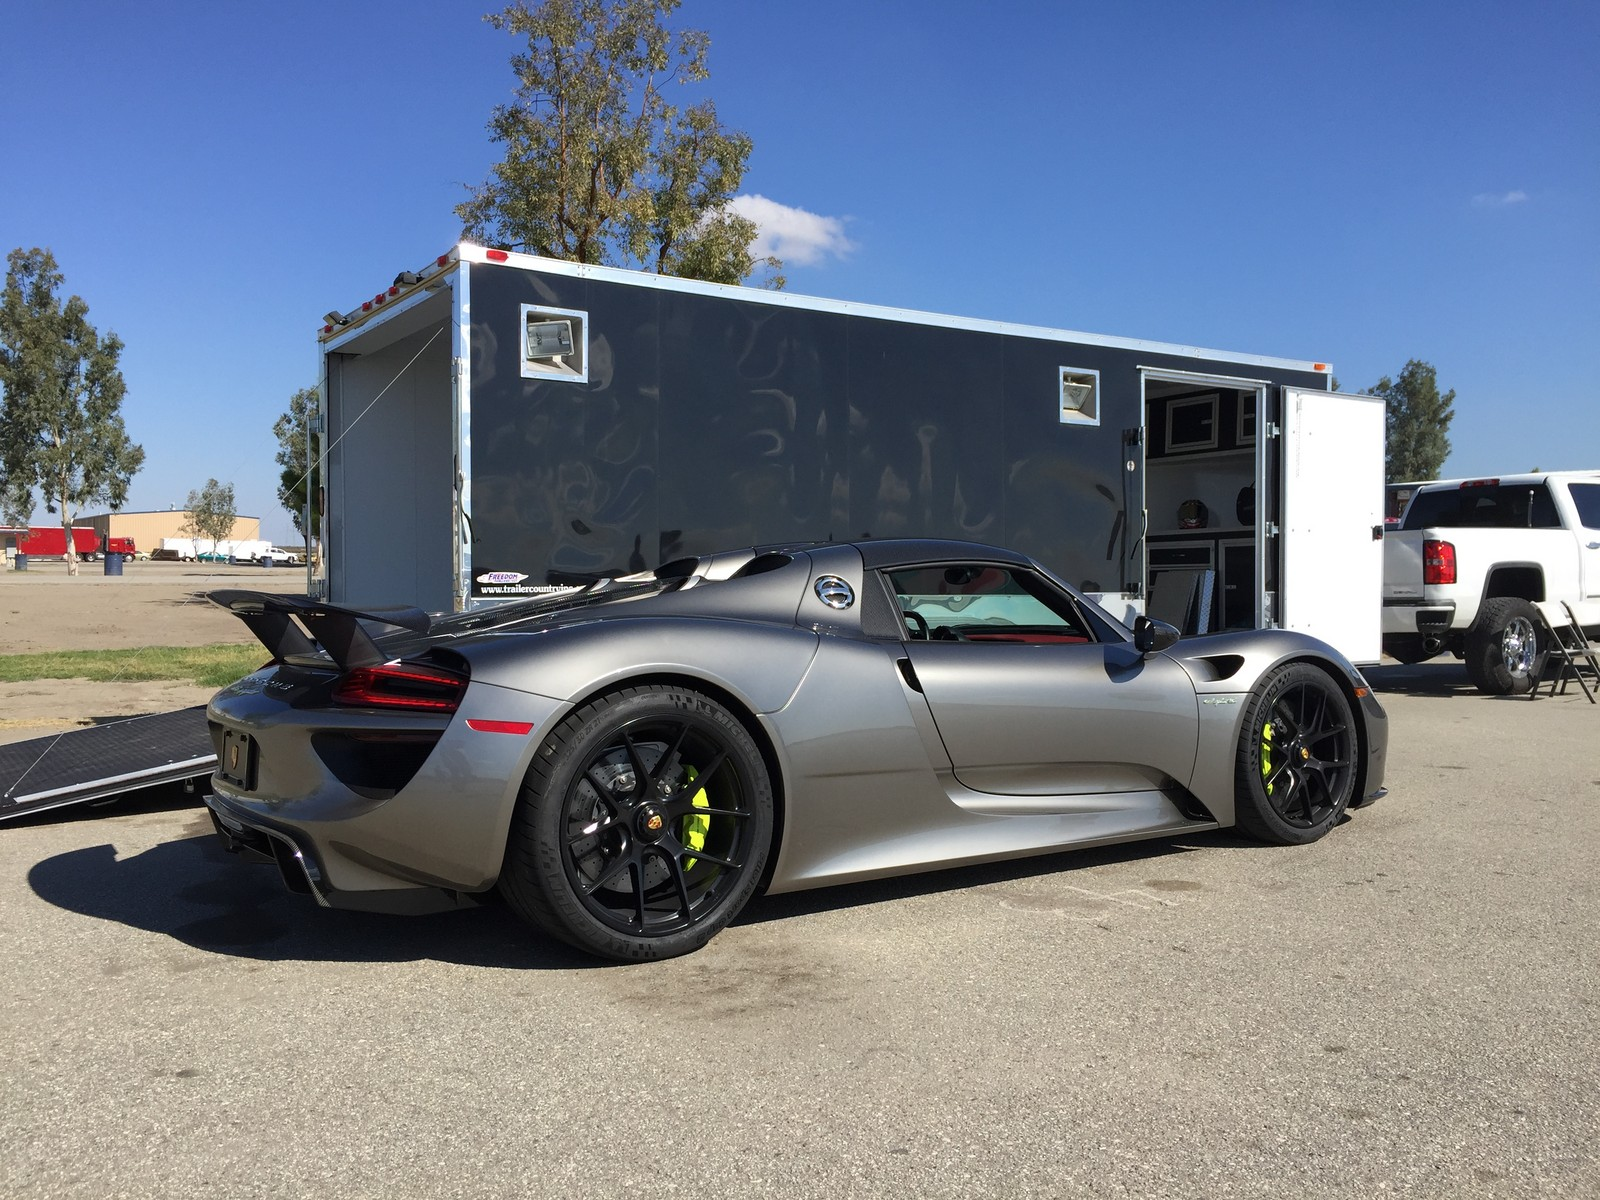 stock 2015 porsche 918 spyder 1 4 mile drag racing timeslip specs 0 60 drag. Black Bedroom Furniture Sets. Home Design Ideas